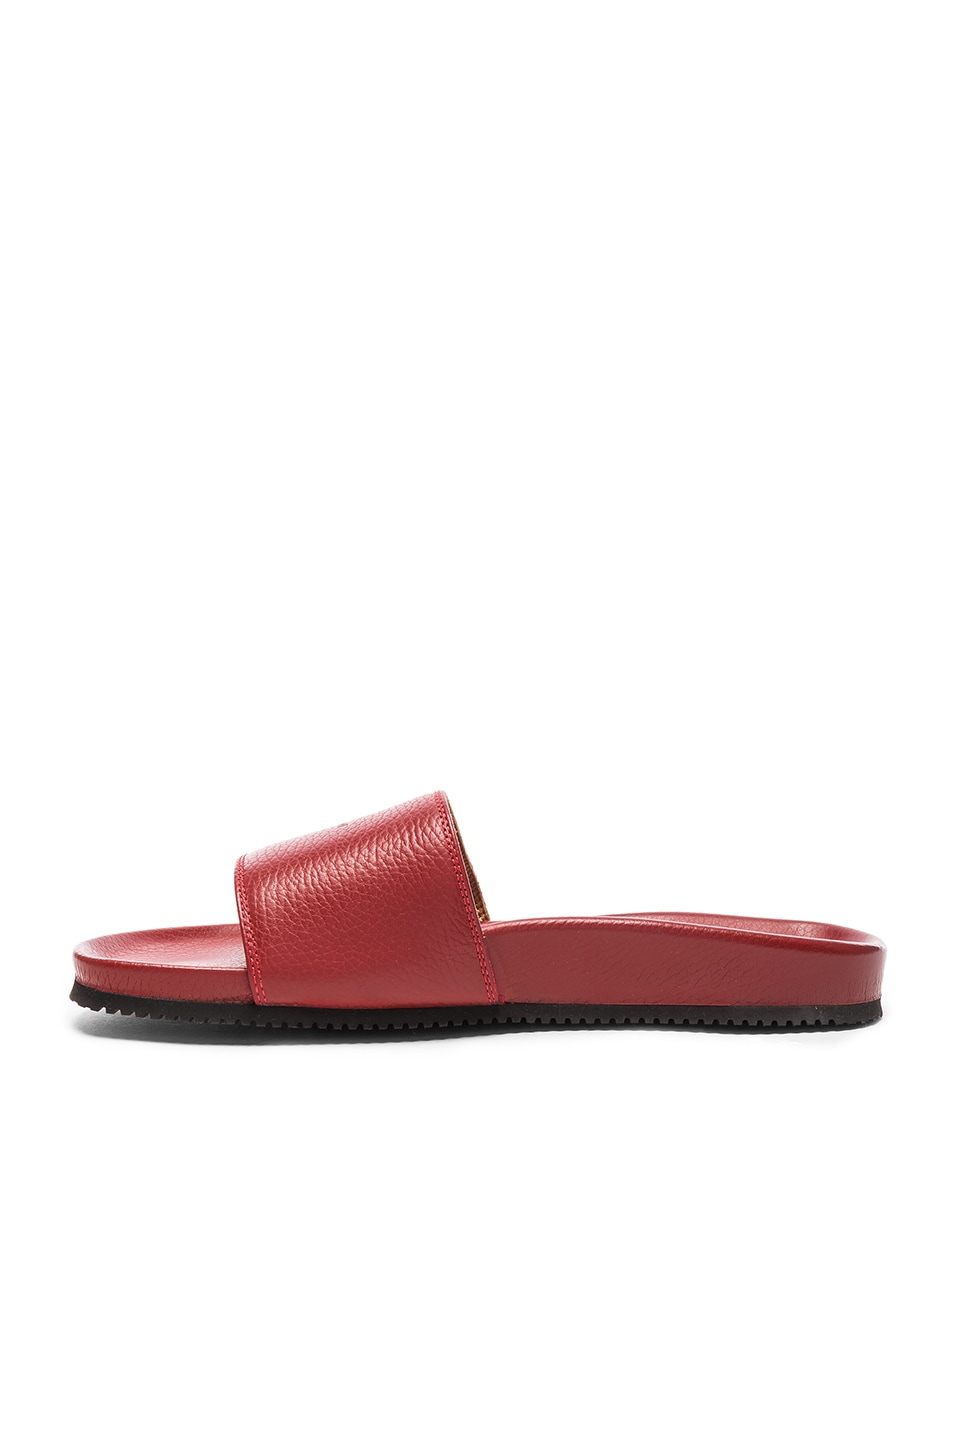 Image 4 of Buscemi Classic Leather Slide Sandals in Red